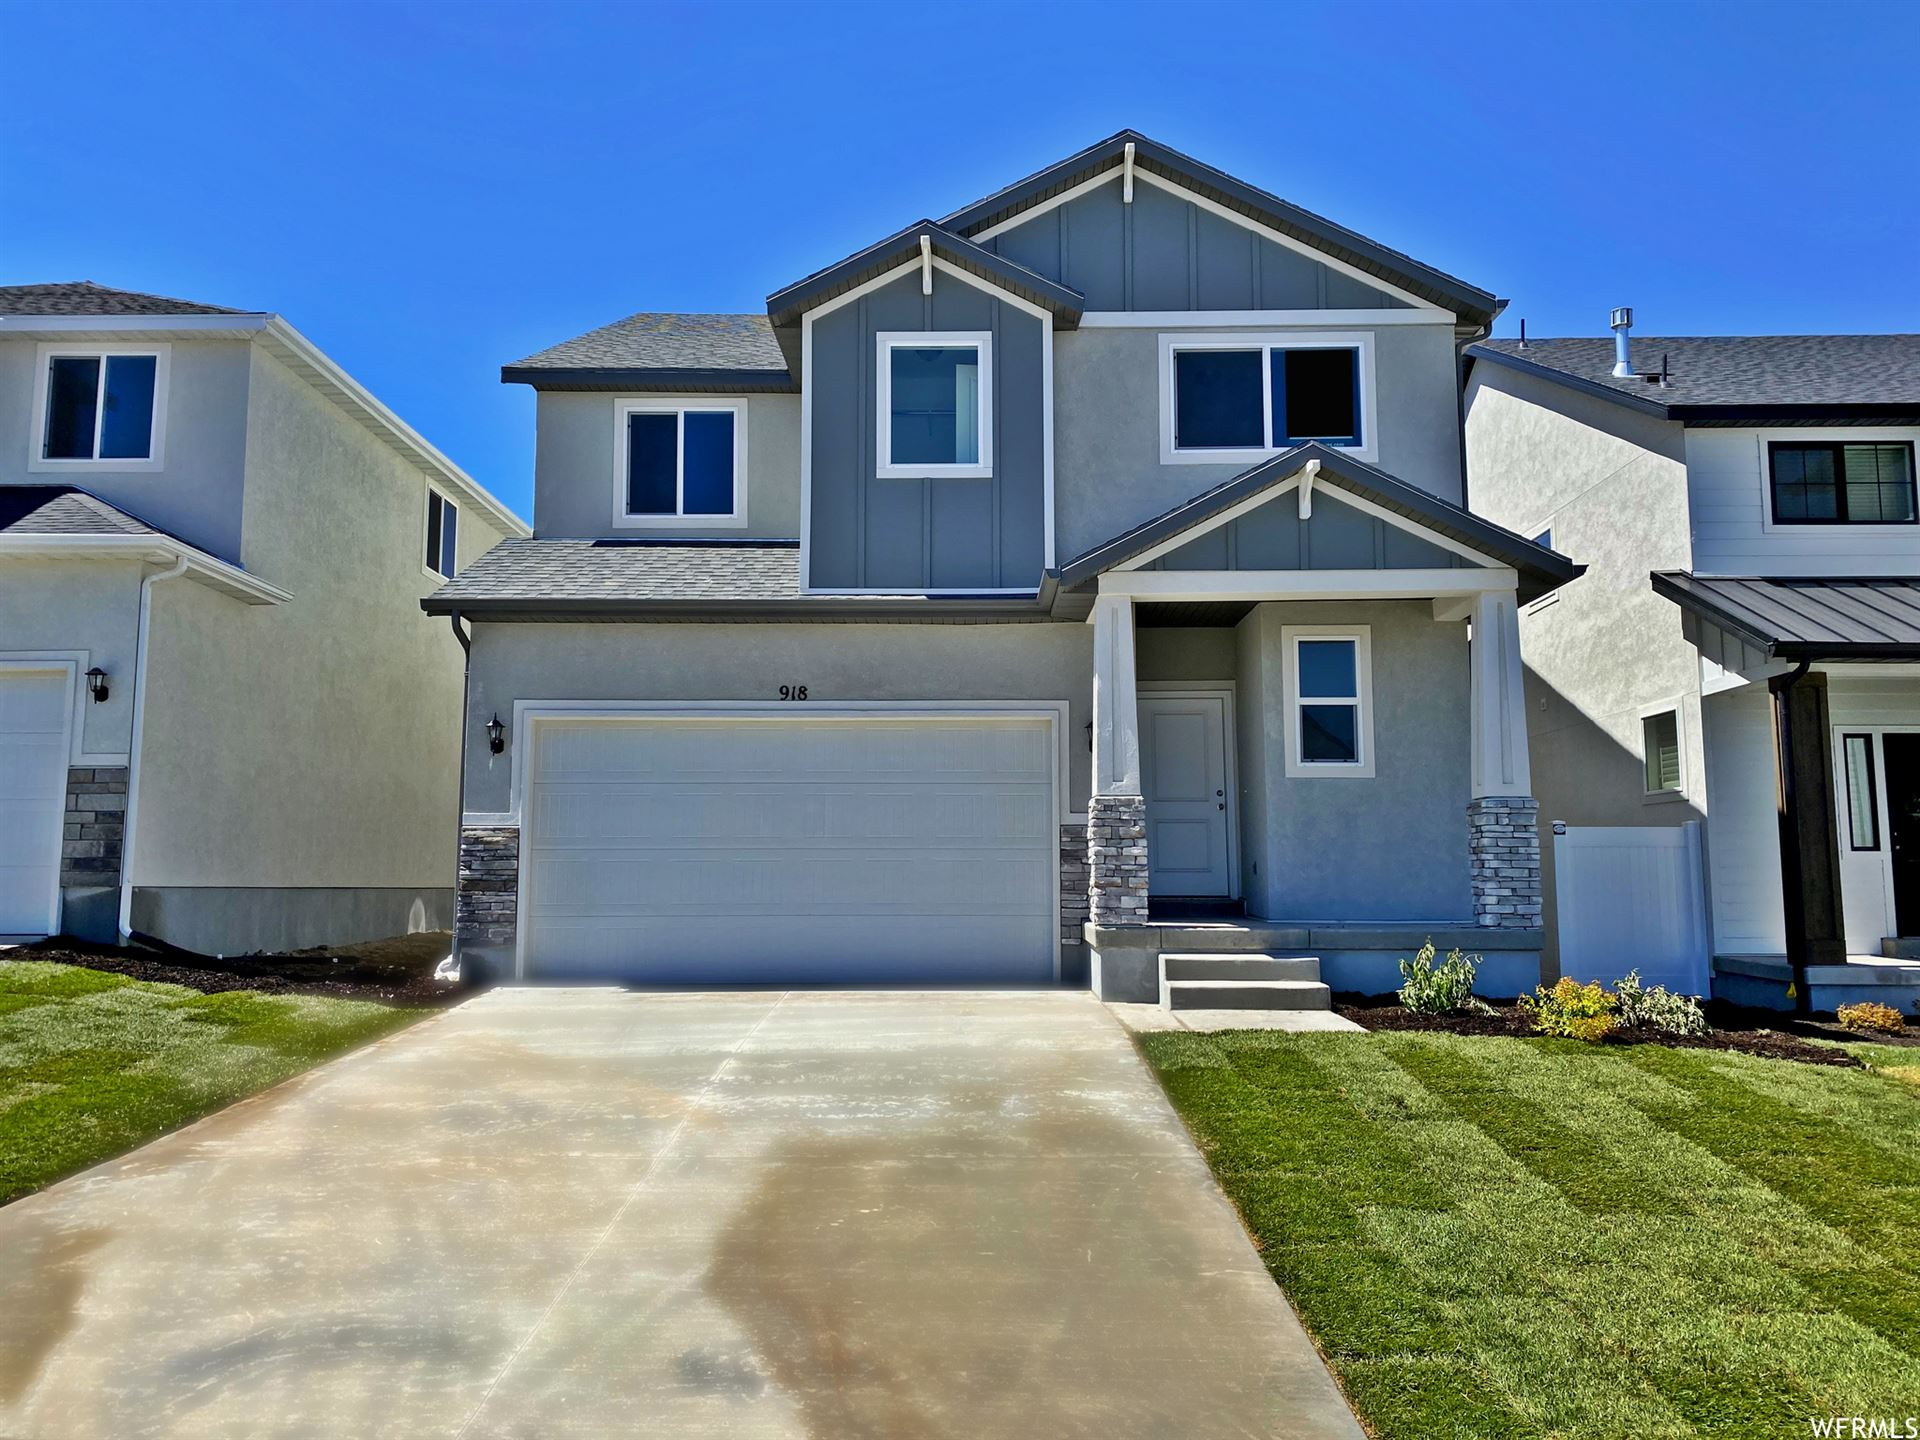 Photo of 918 W INDEPENDENCE #147, Saratoga Springs, UT 84045 (MLS # 1723557)